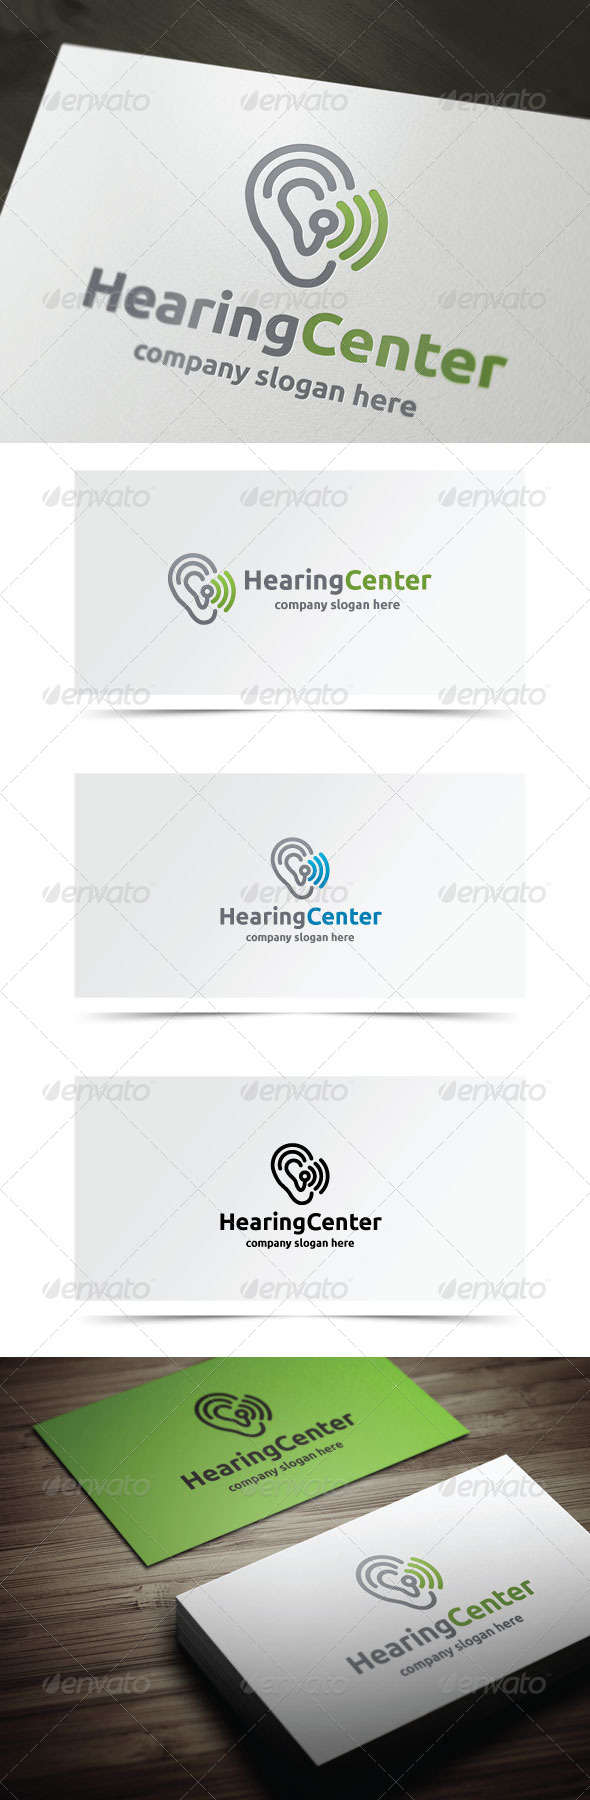 GraphicRiver Hearing Center 7743403